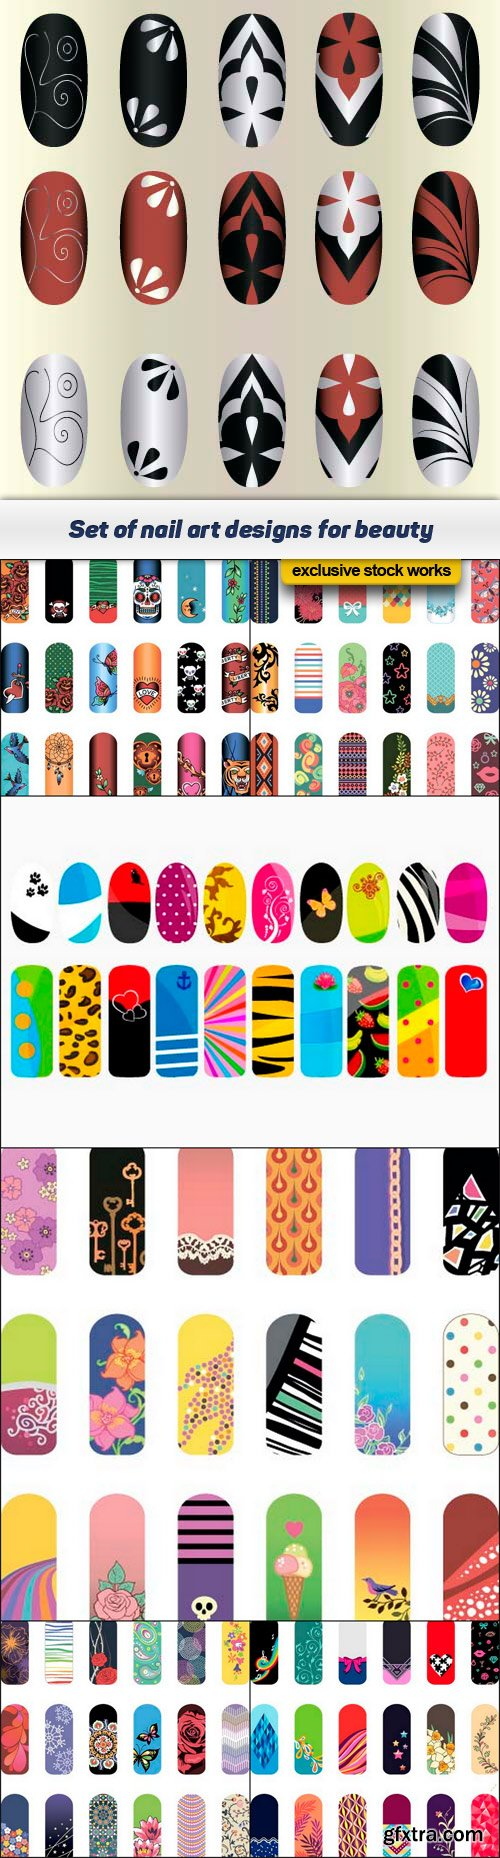 Set of nail art designs for beauty 7x EPS